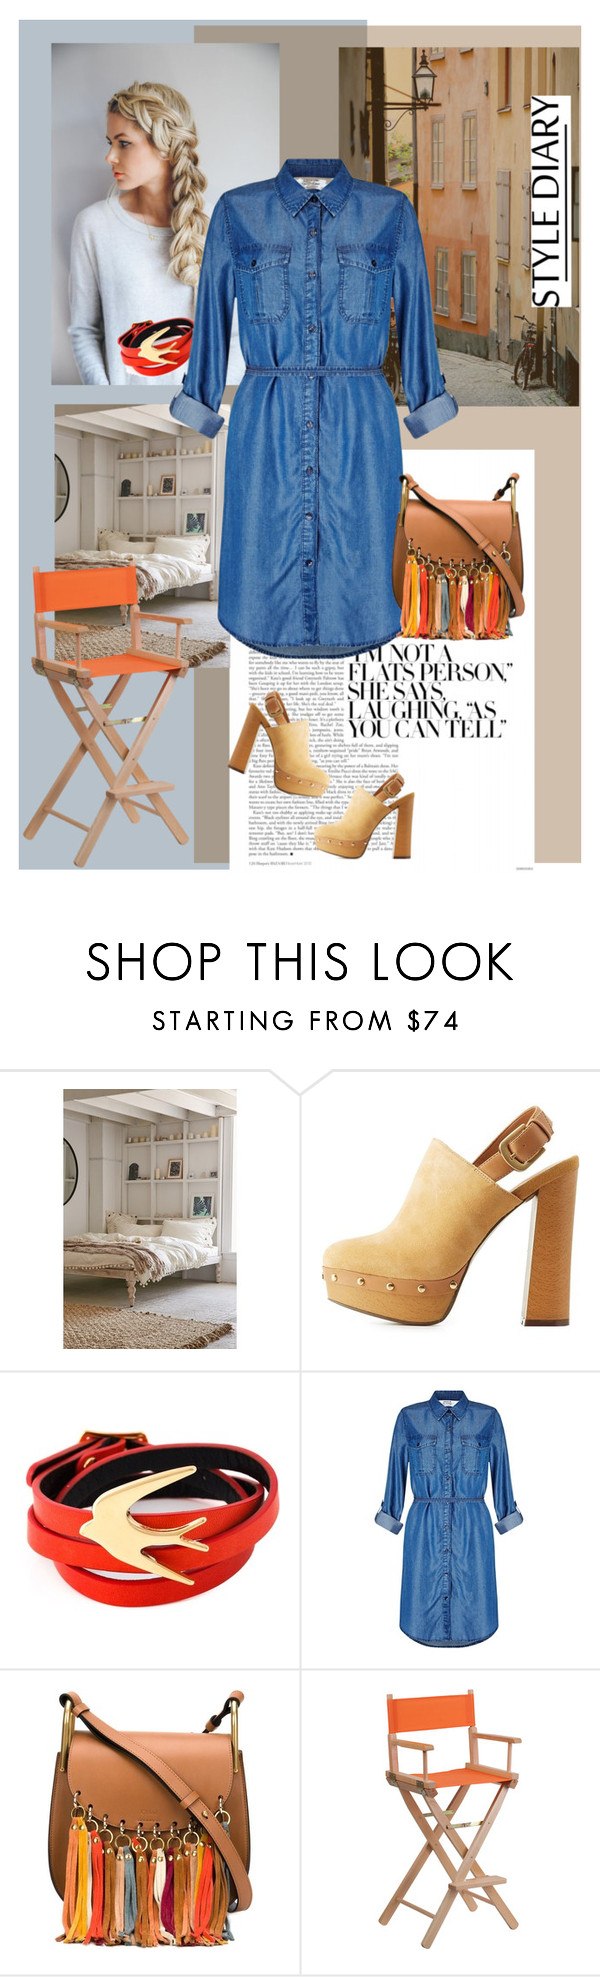 """Denim day..............."" by style-stories ❤ liked on Polyvore featuring Magical Thinking, Report, McQ by Alexander McQueen, Miss Selfridge, Chloé and Flash Furniture"